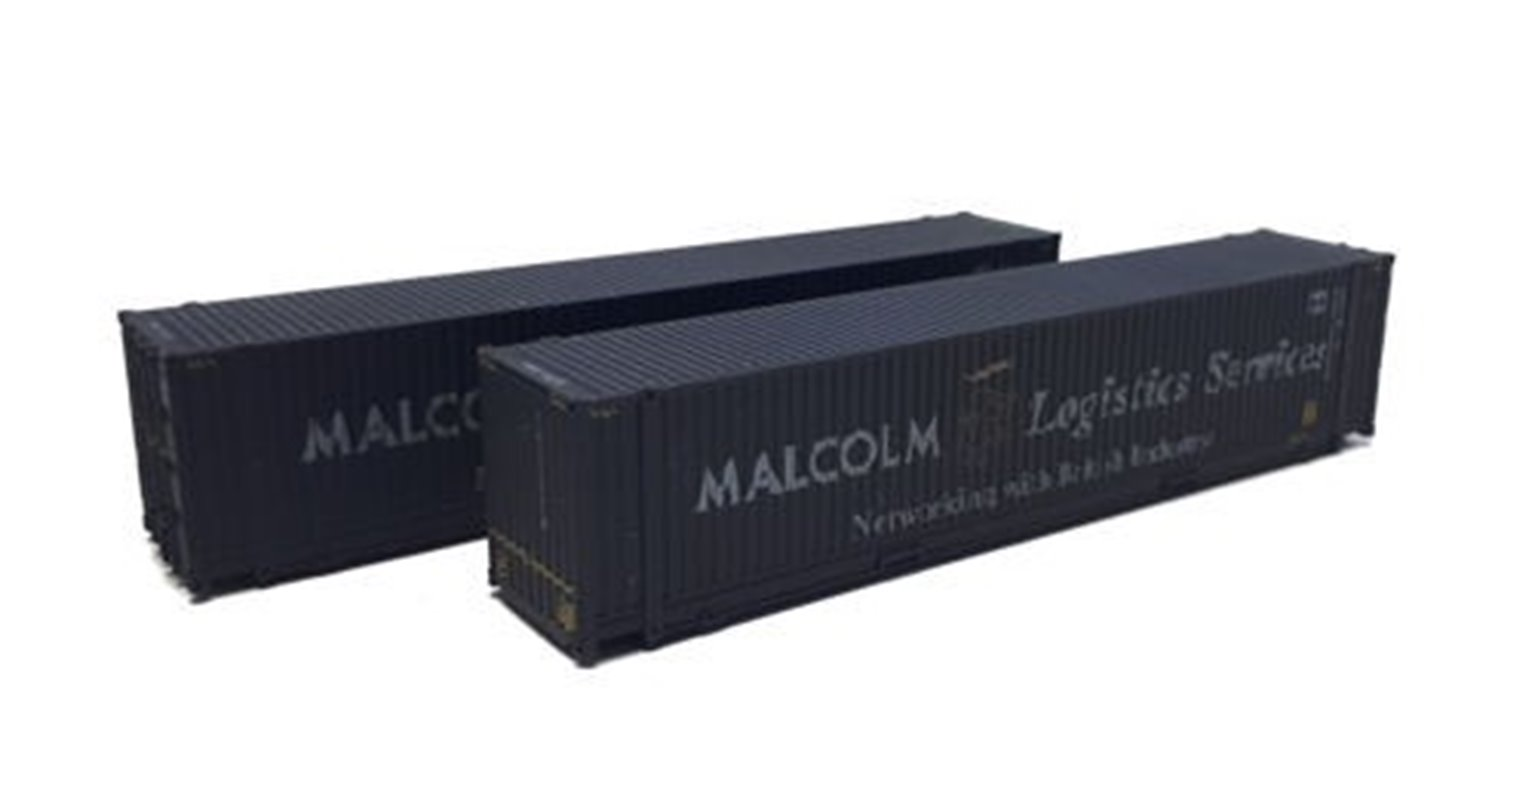 45ft Containers Malcolm Logistics 450012-2/450049-9 Weathered